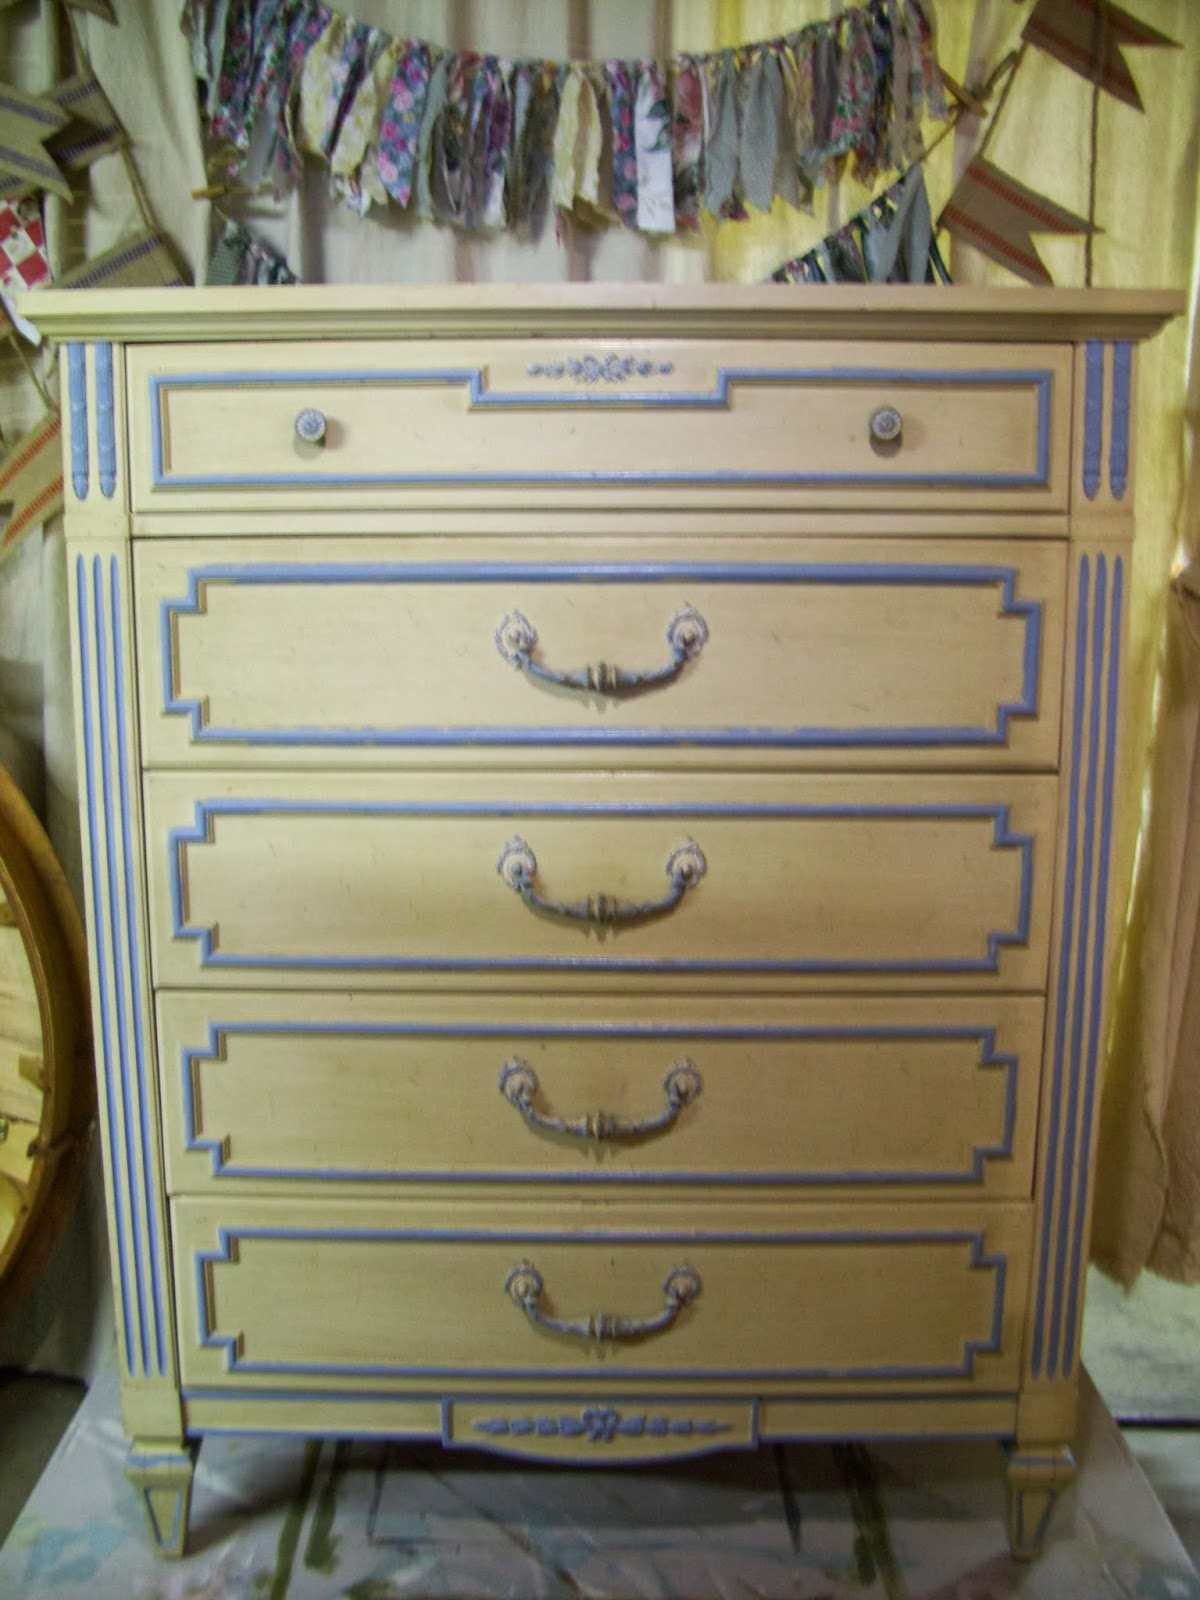 Old Thomasville Furniture Collections Designs - Antique Thomasville  Furniture Prices Migrant Resource Network - Antique Thomasville - Antique Thomasville Furniture Antique Furniture